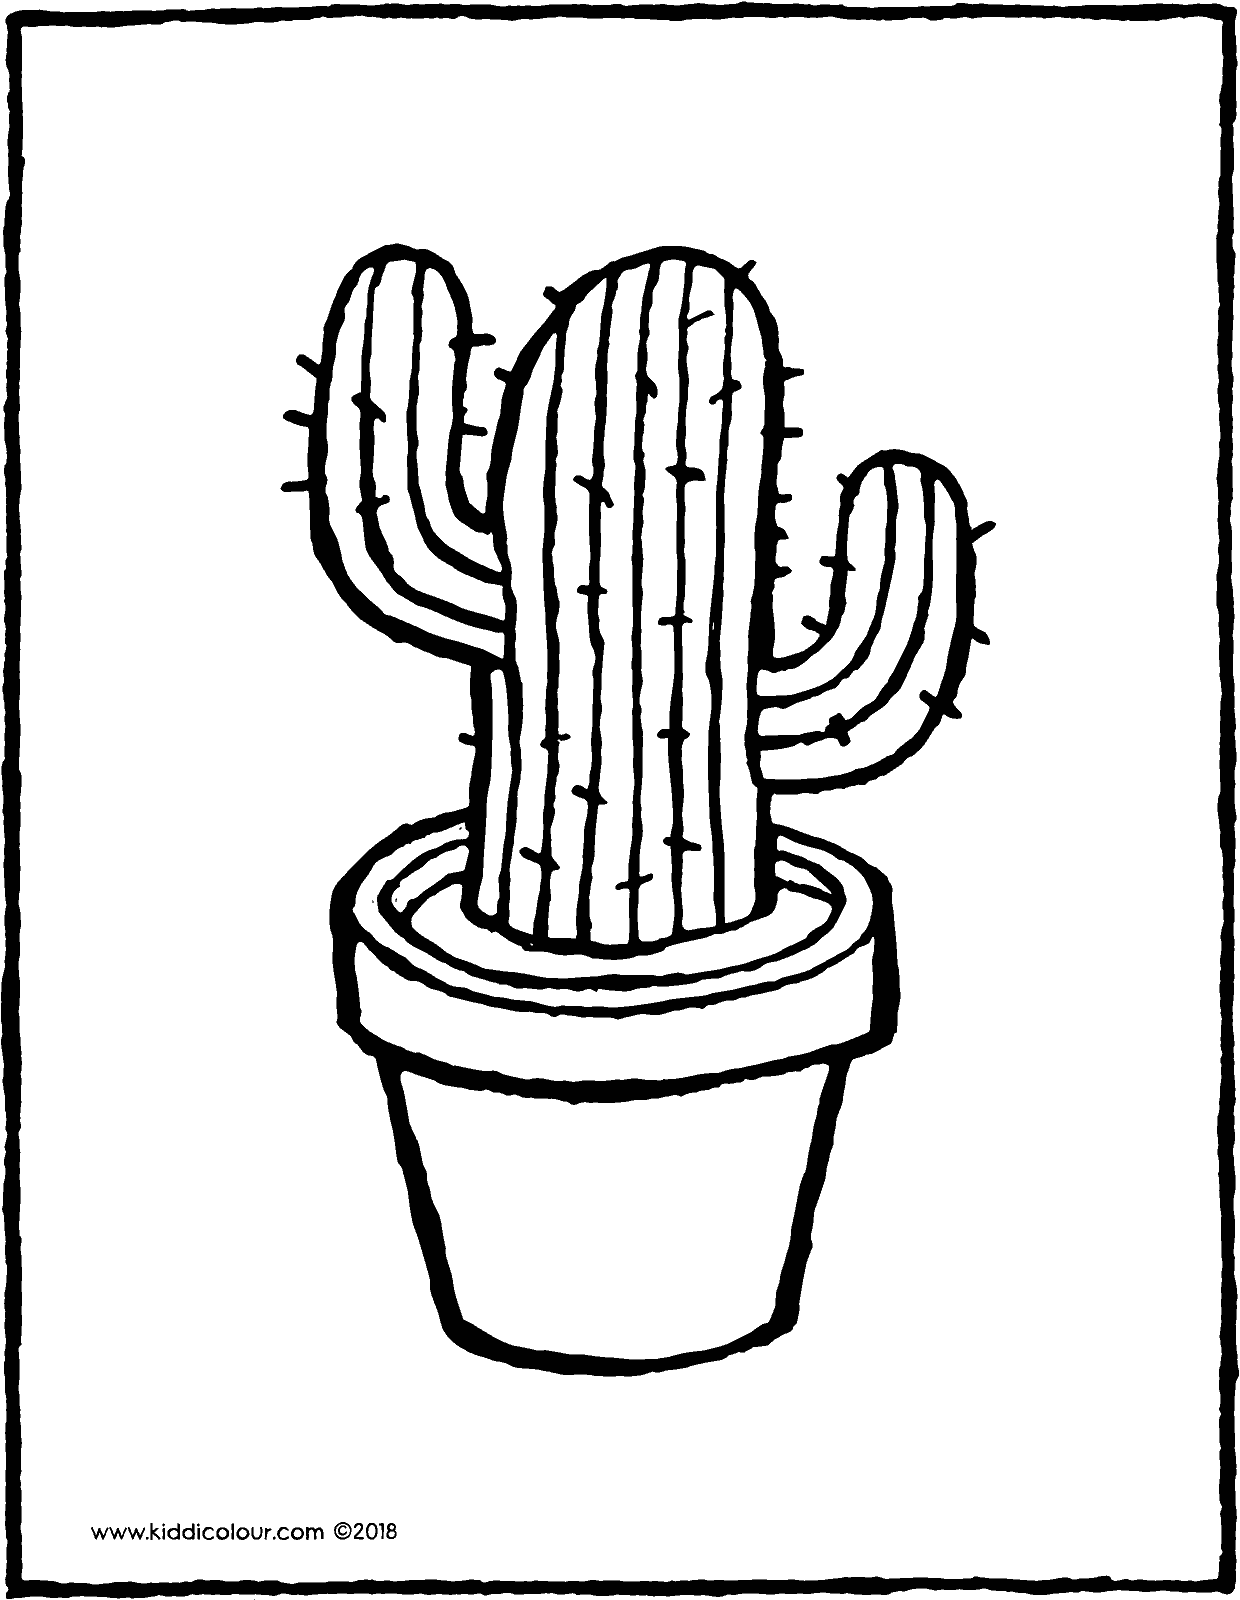 cactus colouring page drawing picture 01V